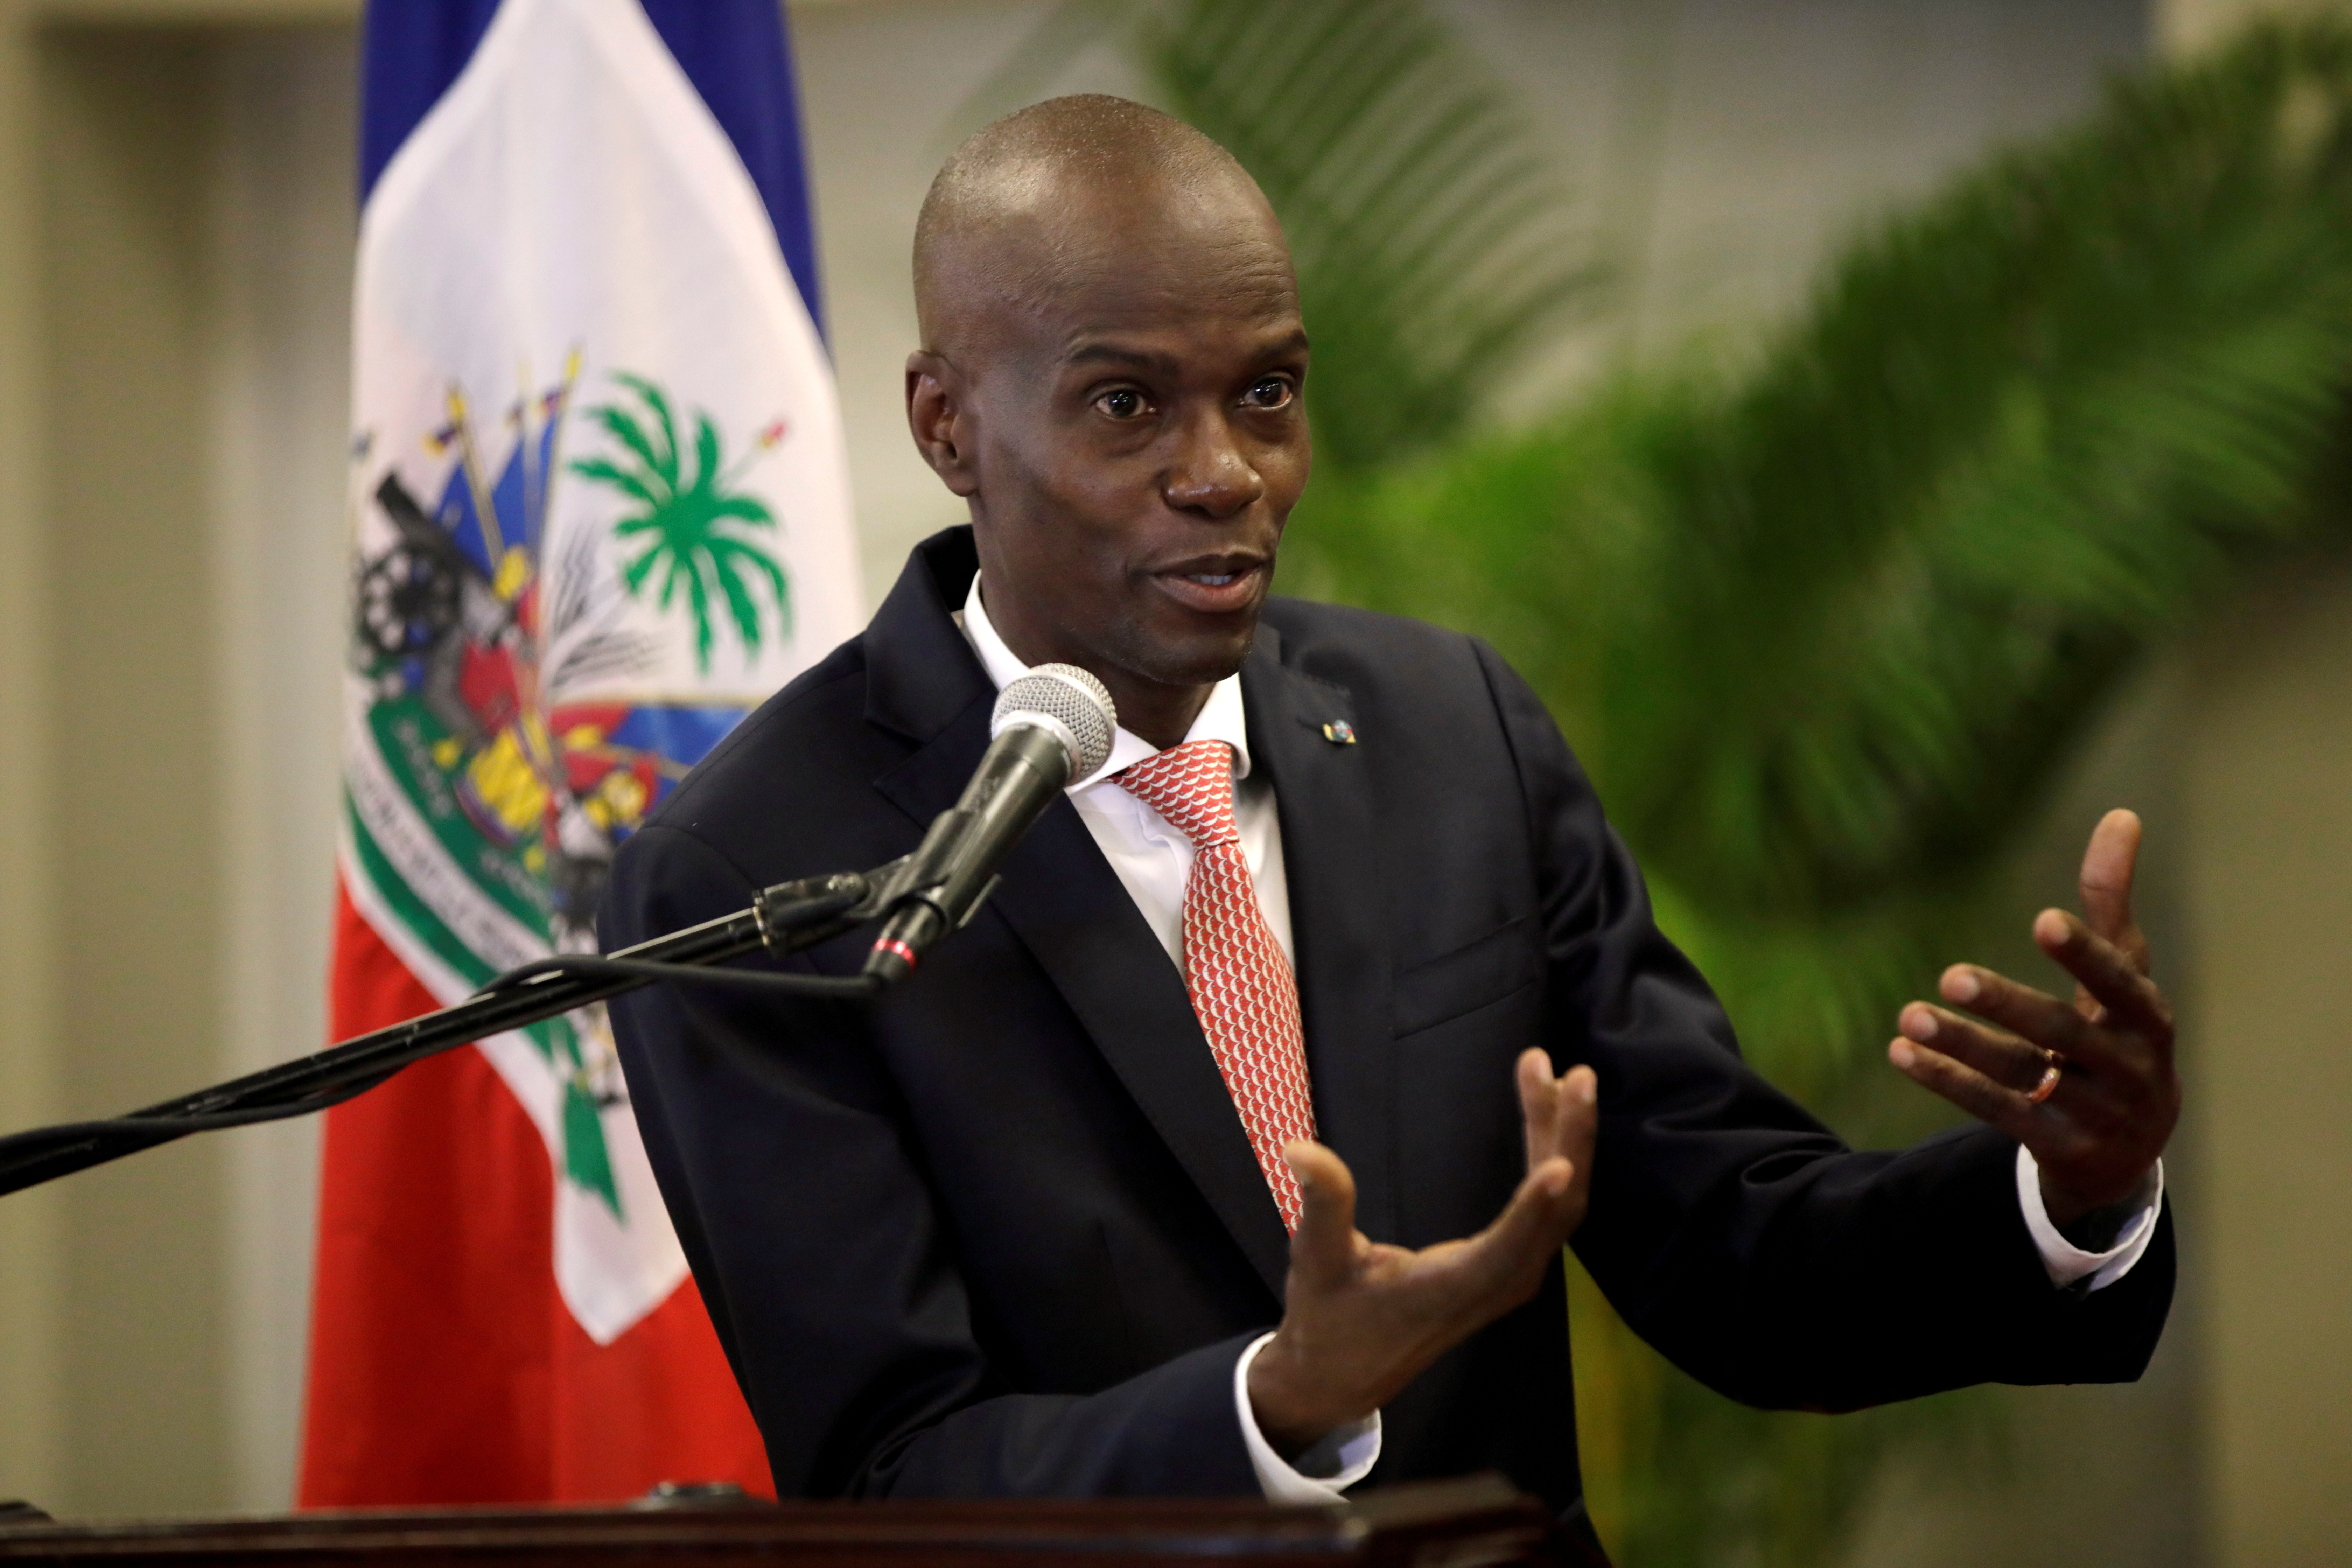 Haiti's President Jovenel Moise speaks during a news conference to provide information about the measures concerning coronavirus, at the National Palace in Port-au-Prince, Haiti March 2, 2020. REUTERS/Andres Martinez Casares/